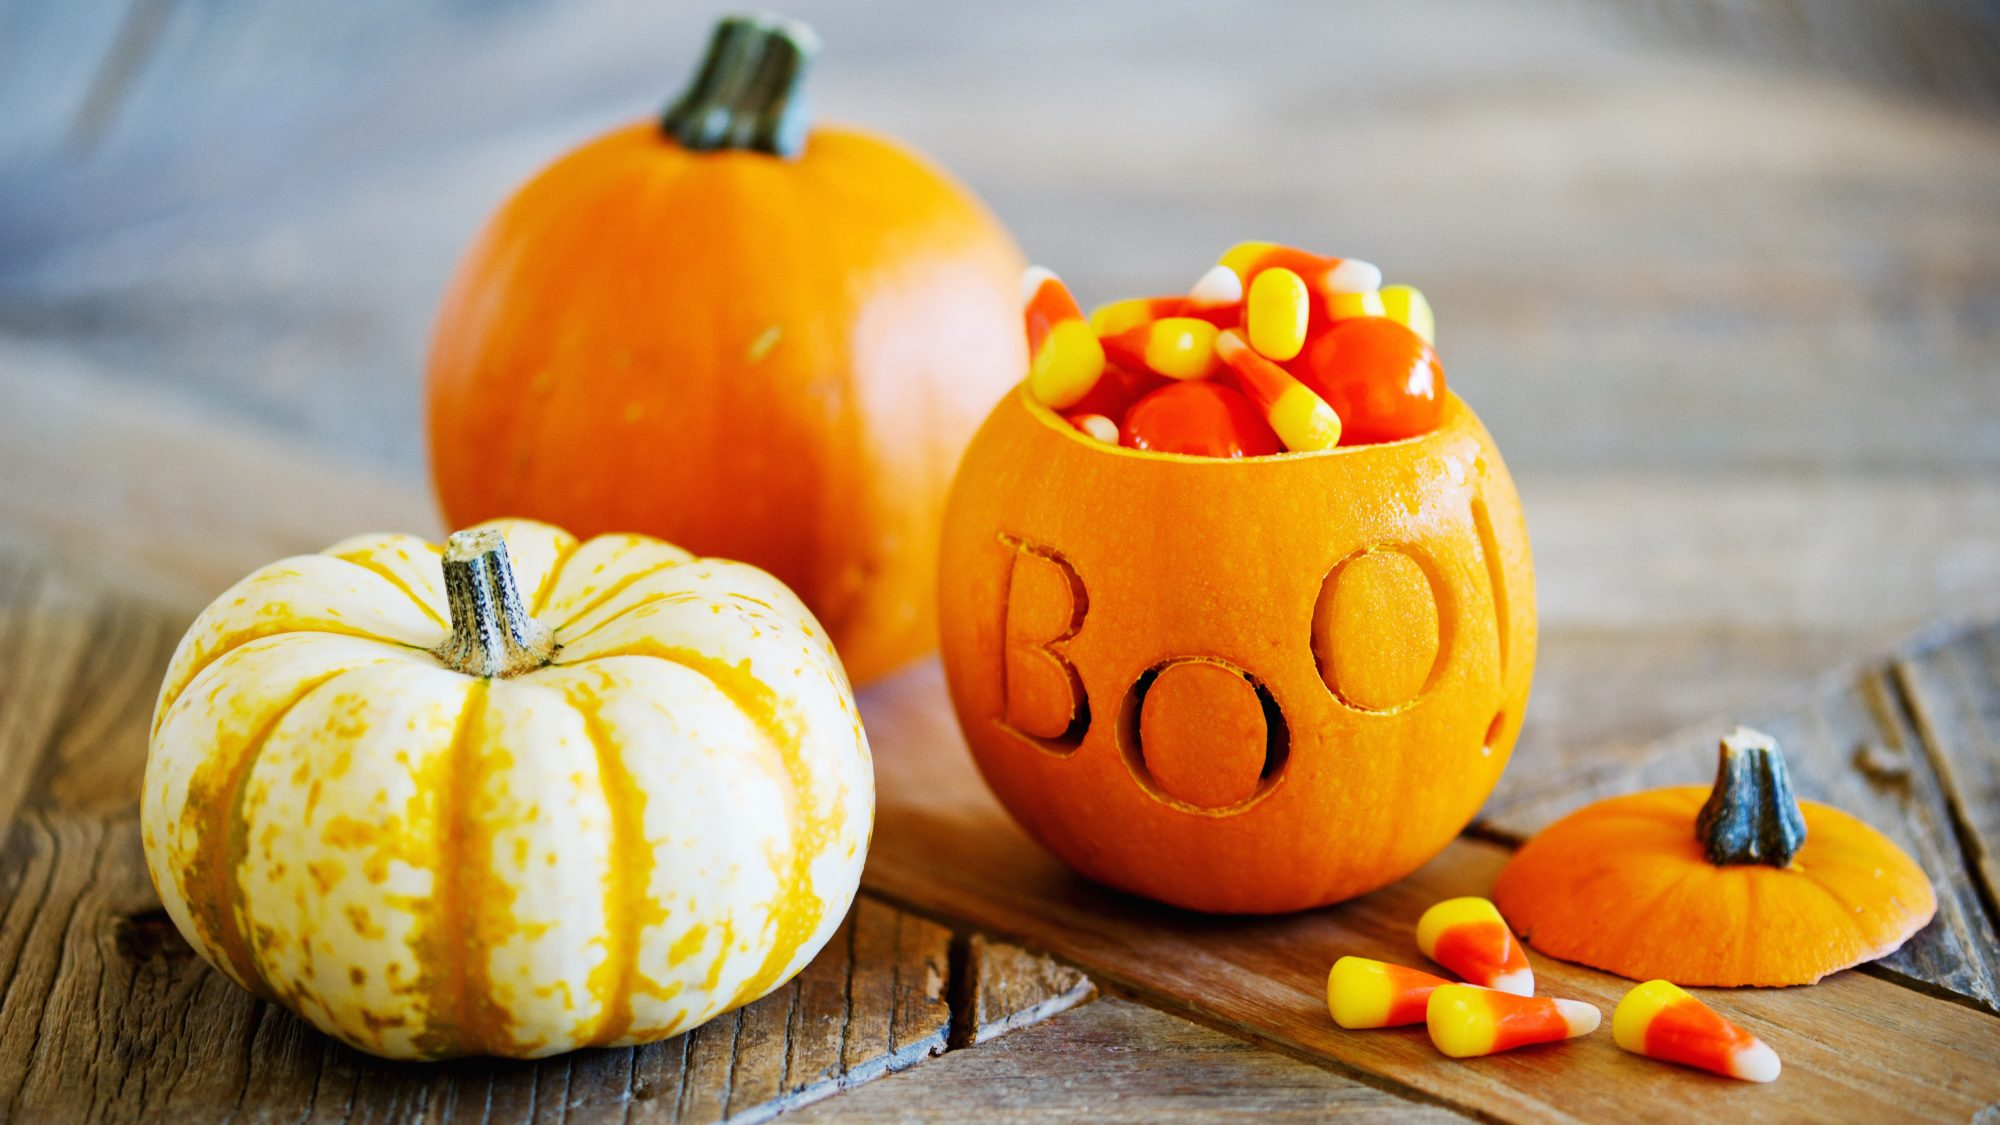 Halloween fun facts - facts and trivia about Halloween, candy corn, and trick-or-treating (pumpkin with candy corn)